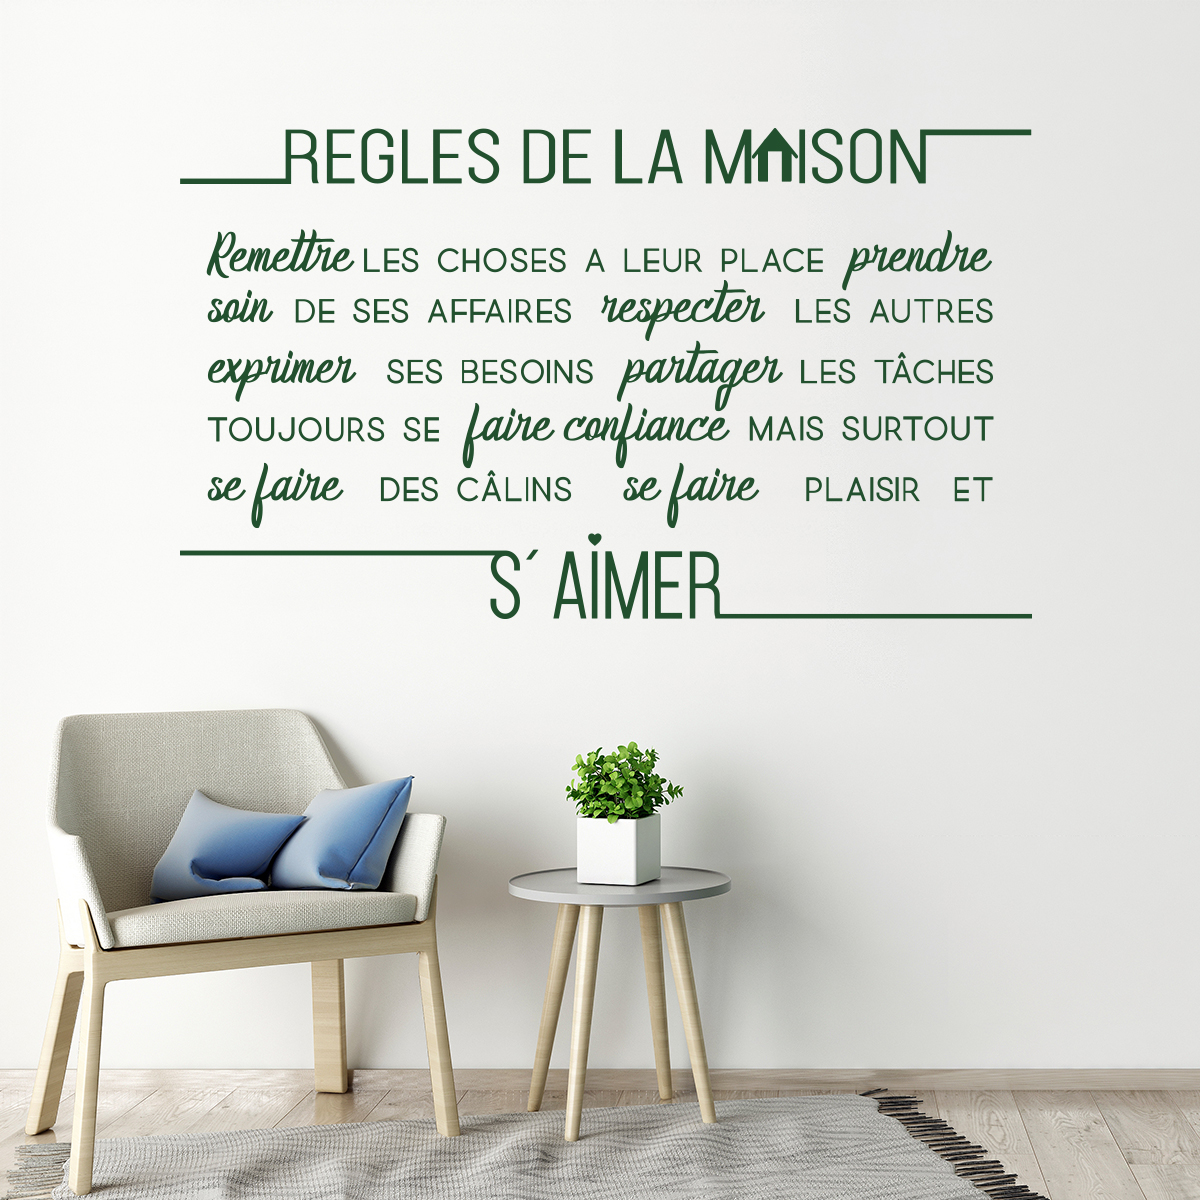 sticker citation r gles de la maison stickers citations fran ais ambiance sticker. Black Bedroom Furniture Sets. Home Design Ideas